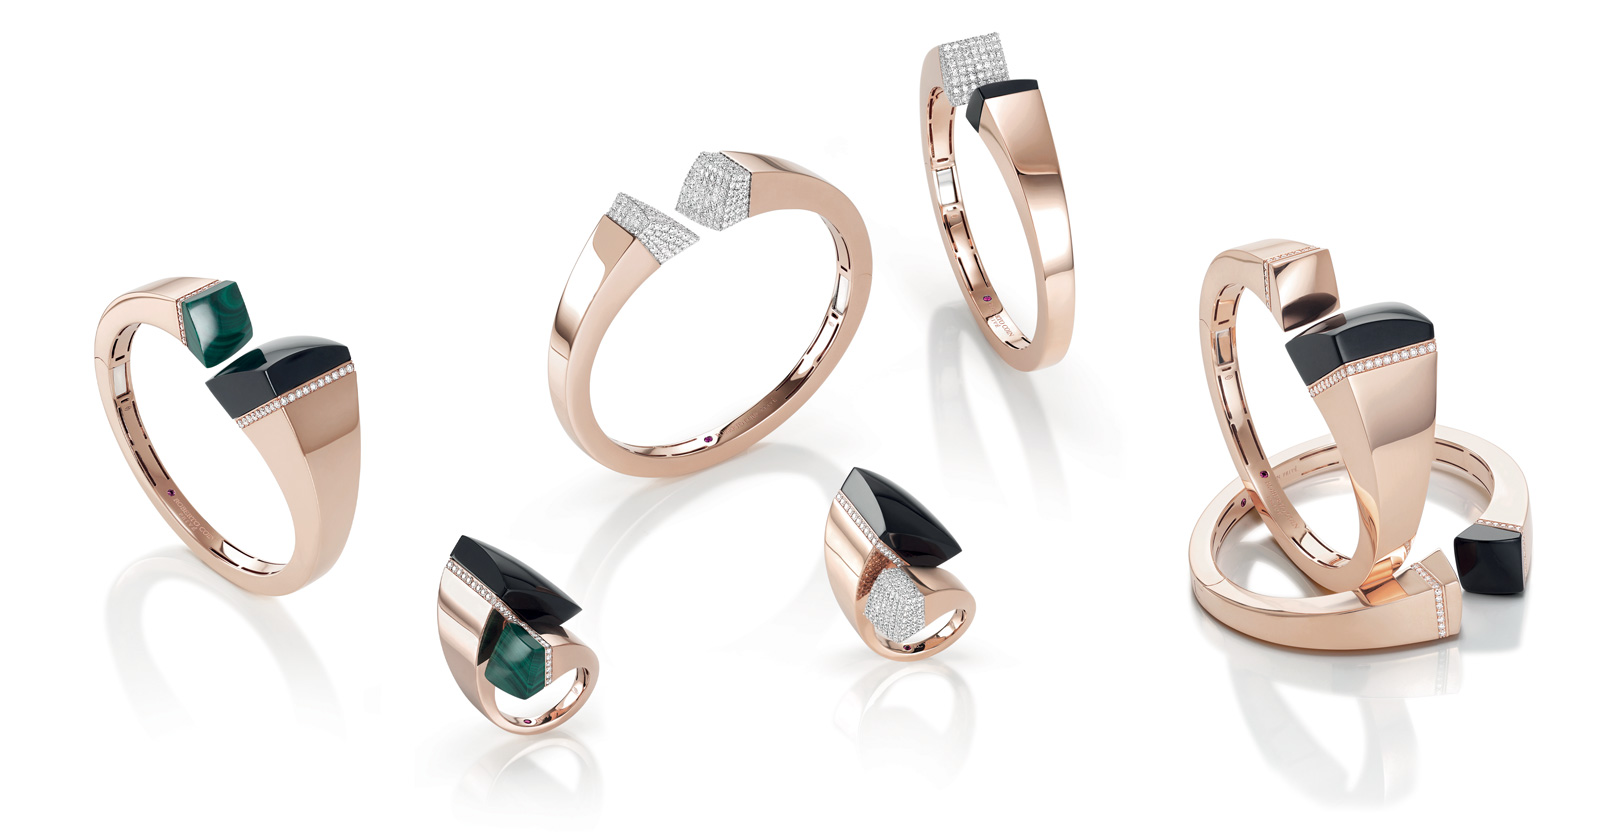 Roberto Coin Sauvage Privé collection in rose gold with malachite, black jade and diamonds